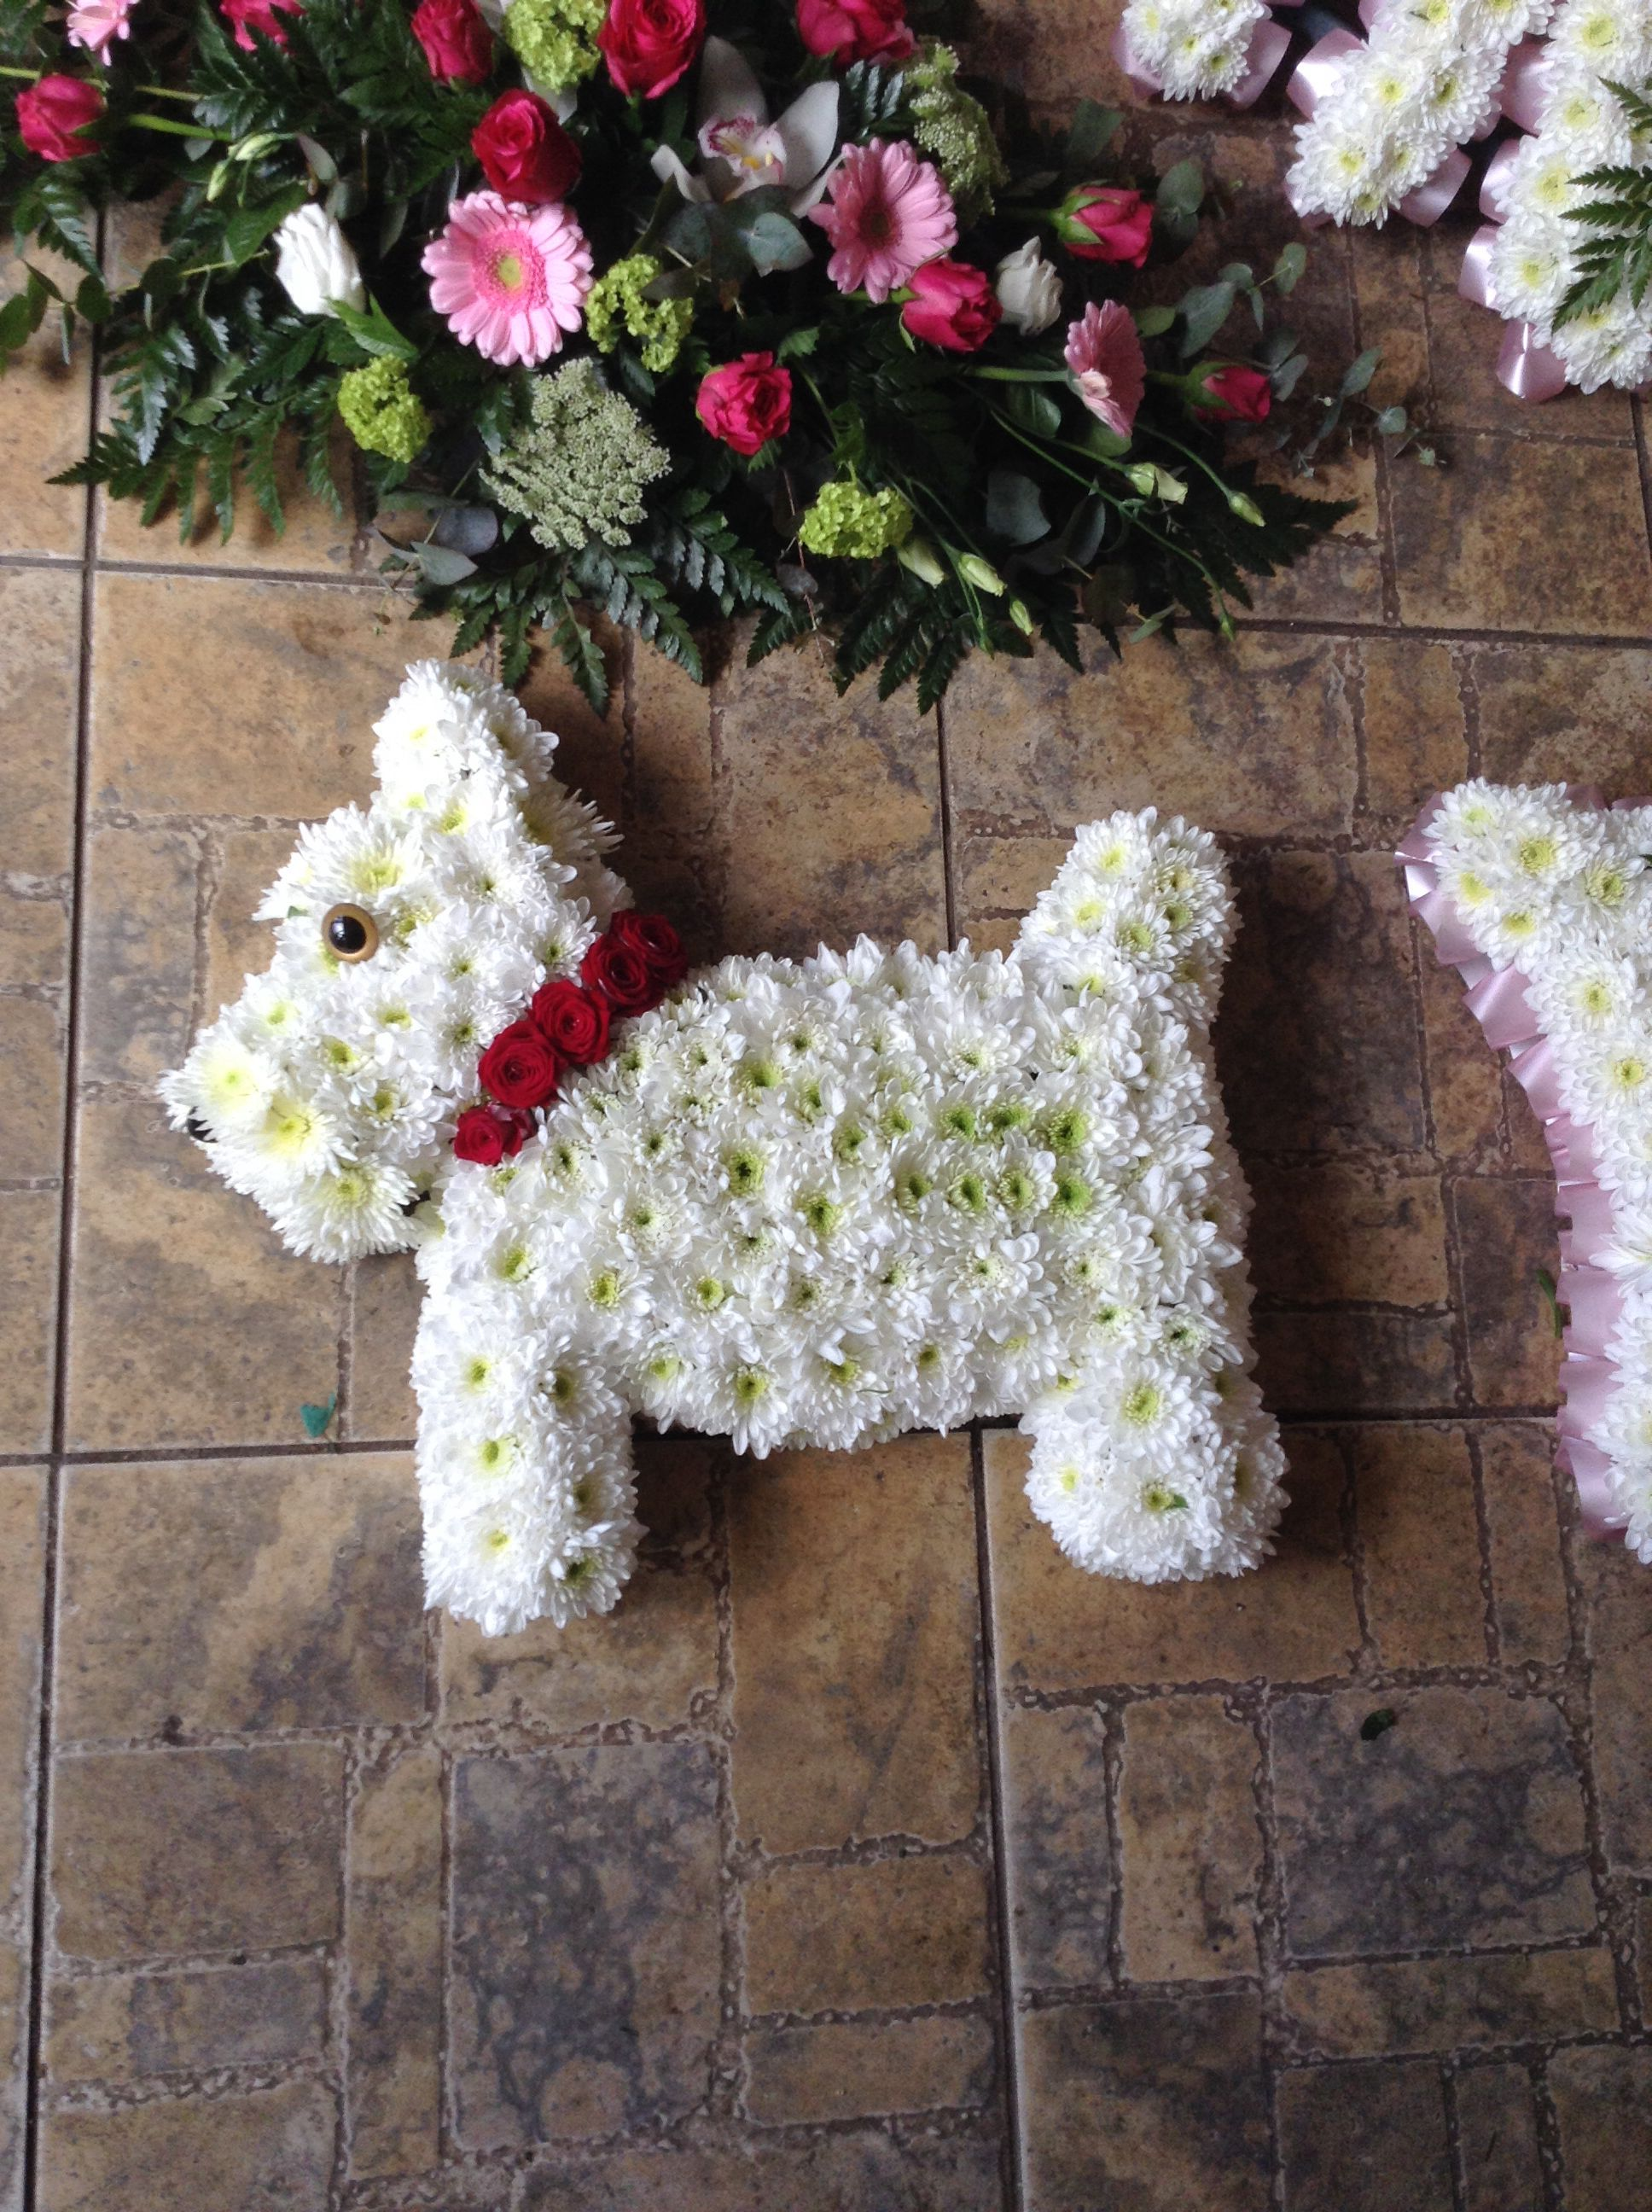 A westie for a dog lover flower girl dudley sympathy a westie for a dog lover flower girl dudley izmirmasajfo